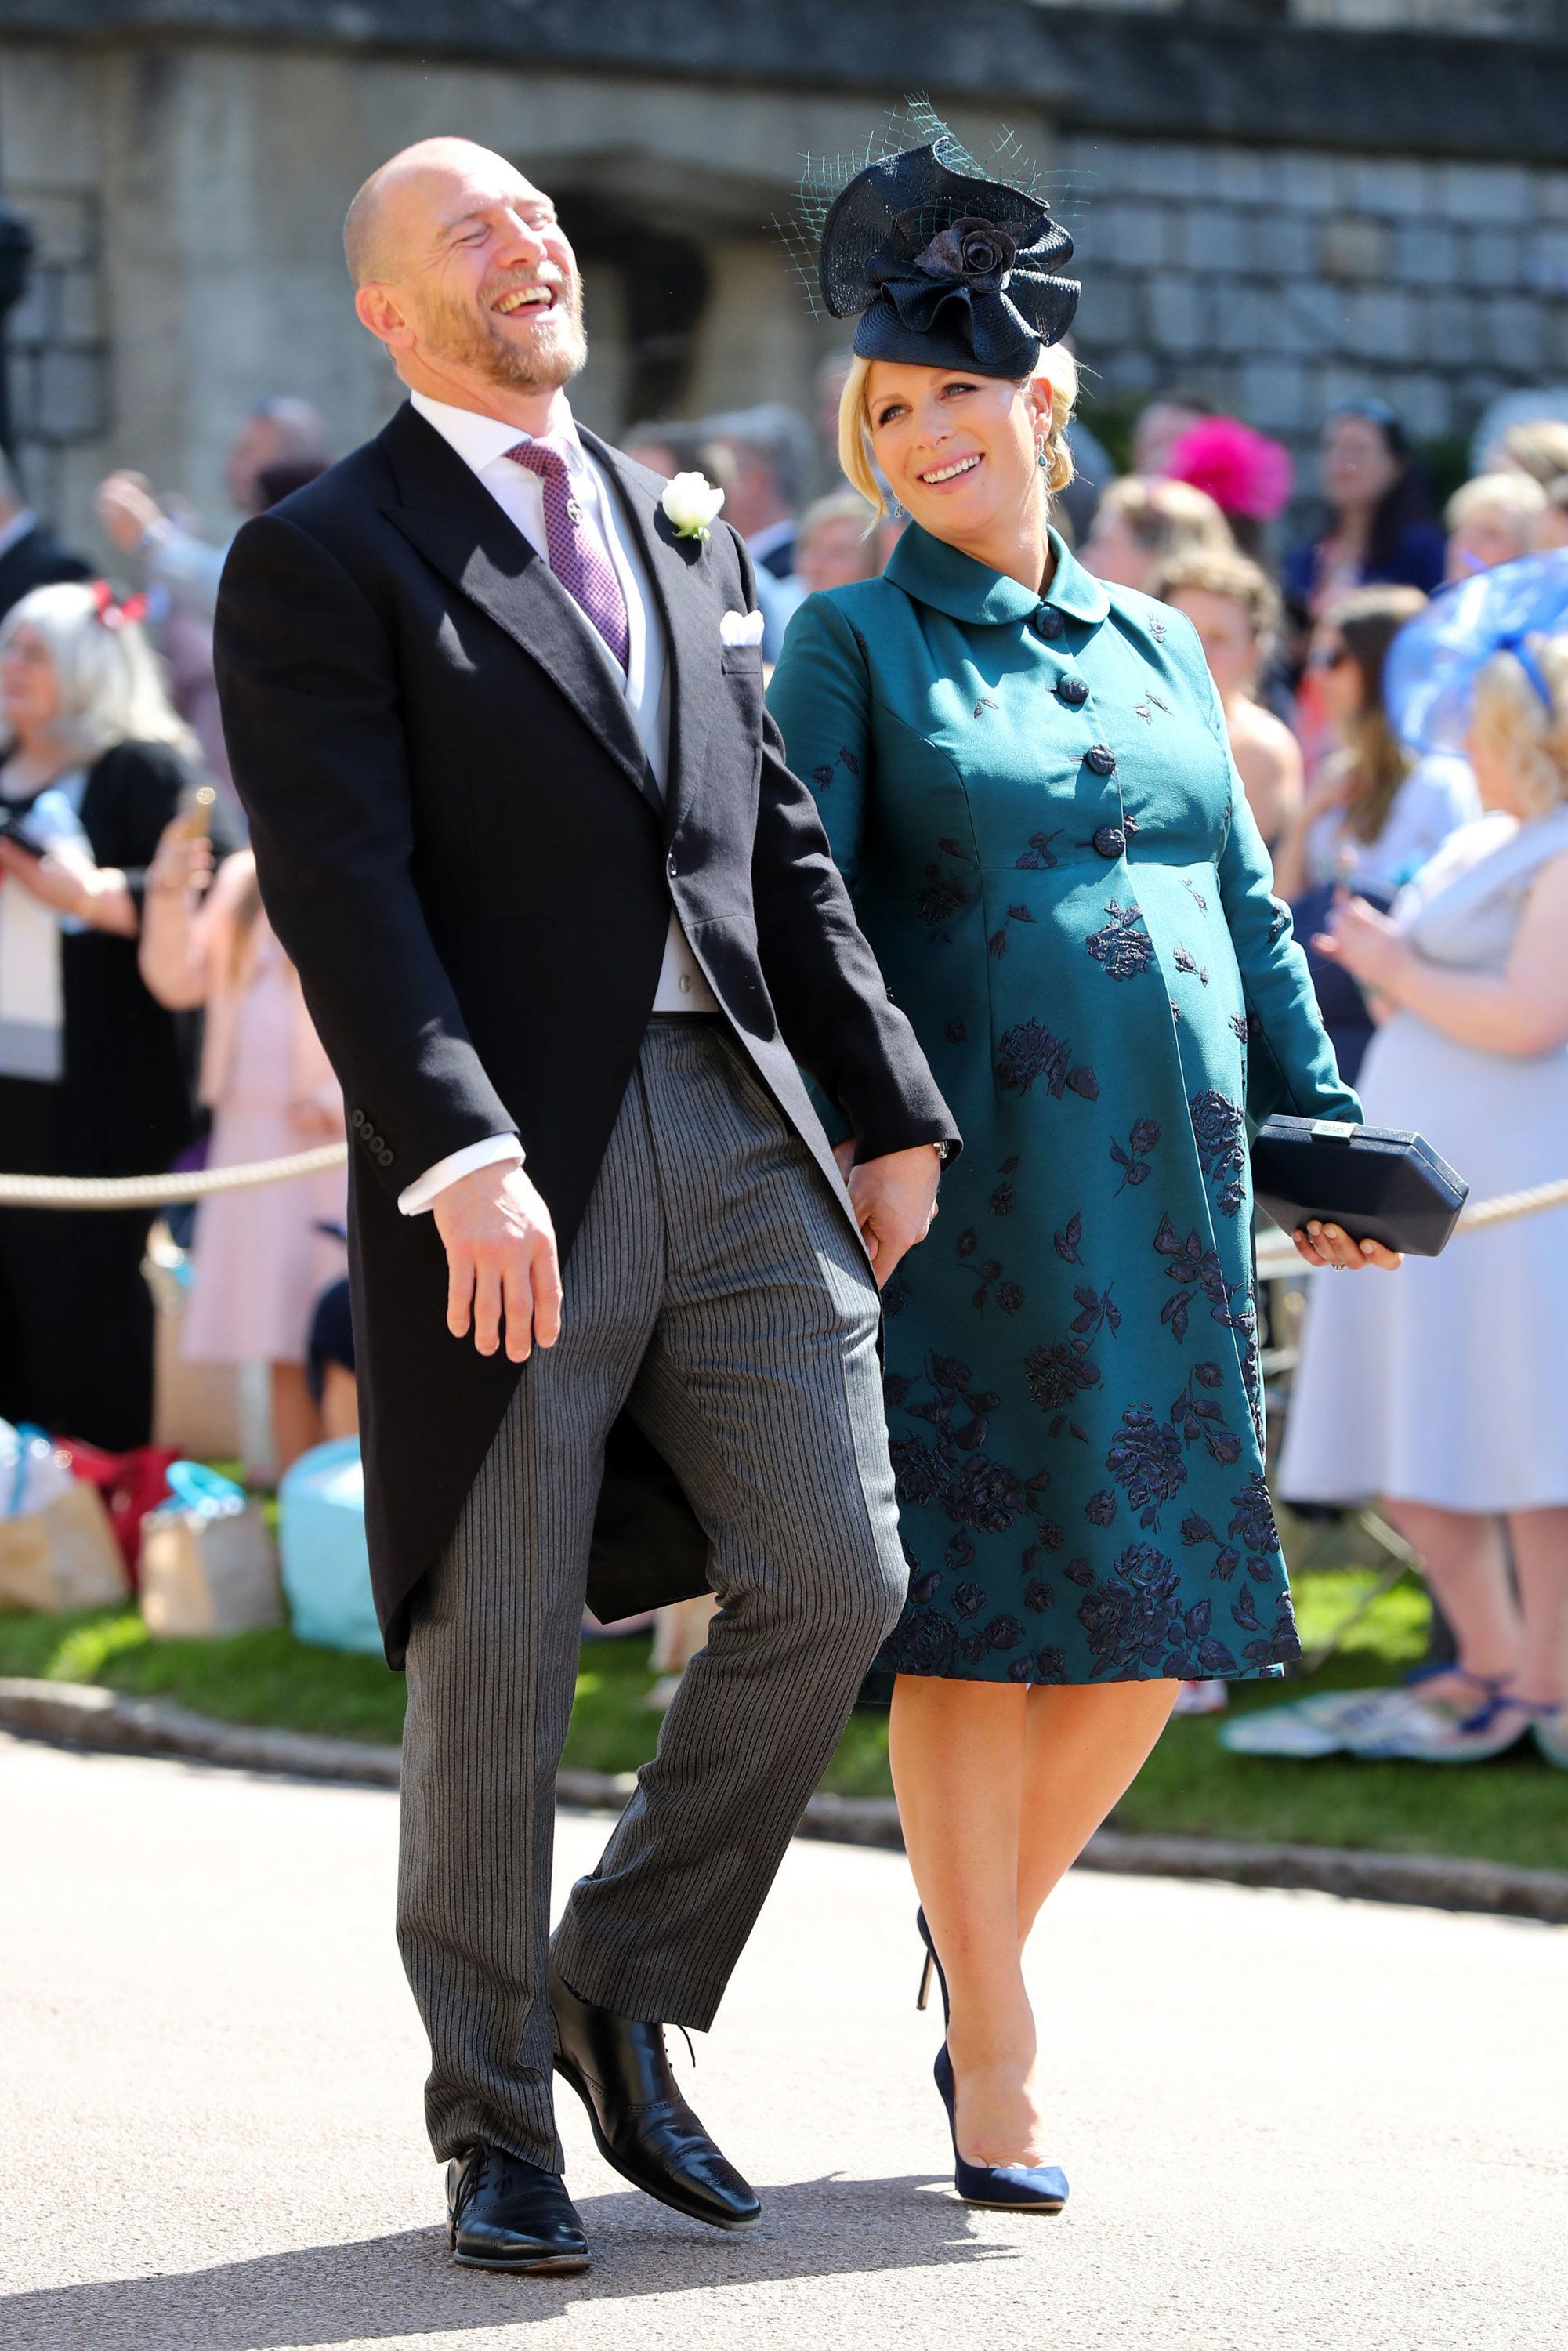 The Queen's Granddaughter Zara Tindall Has Given Birth To Her Second